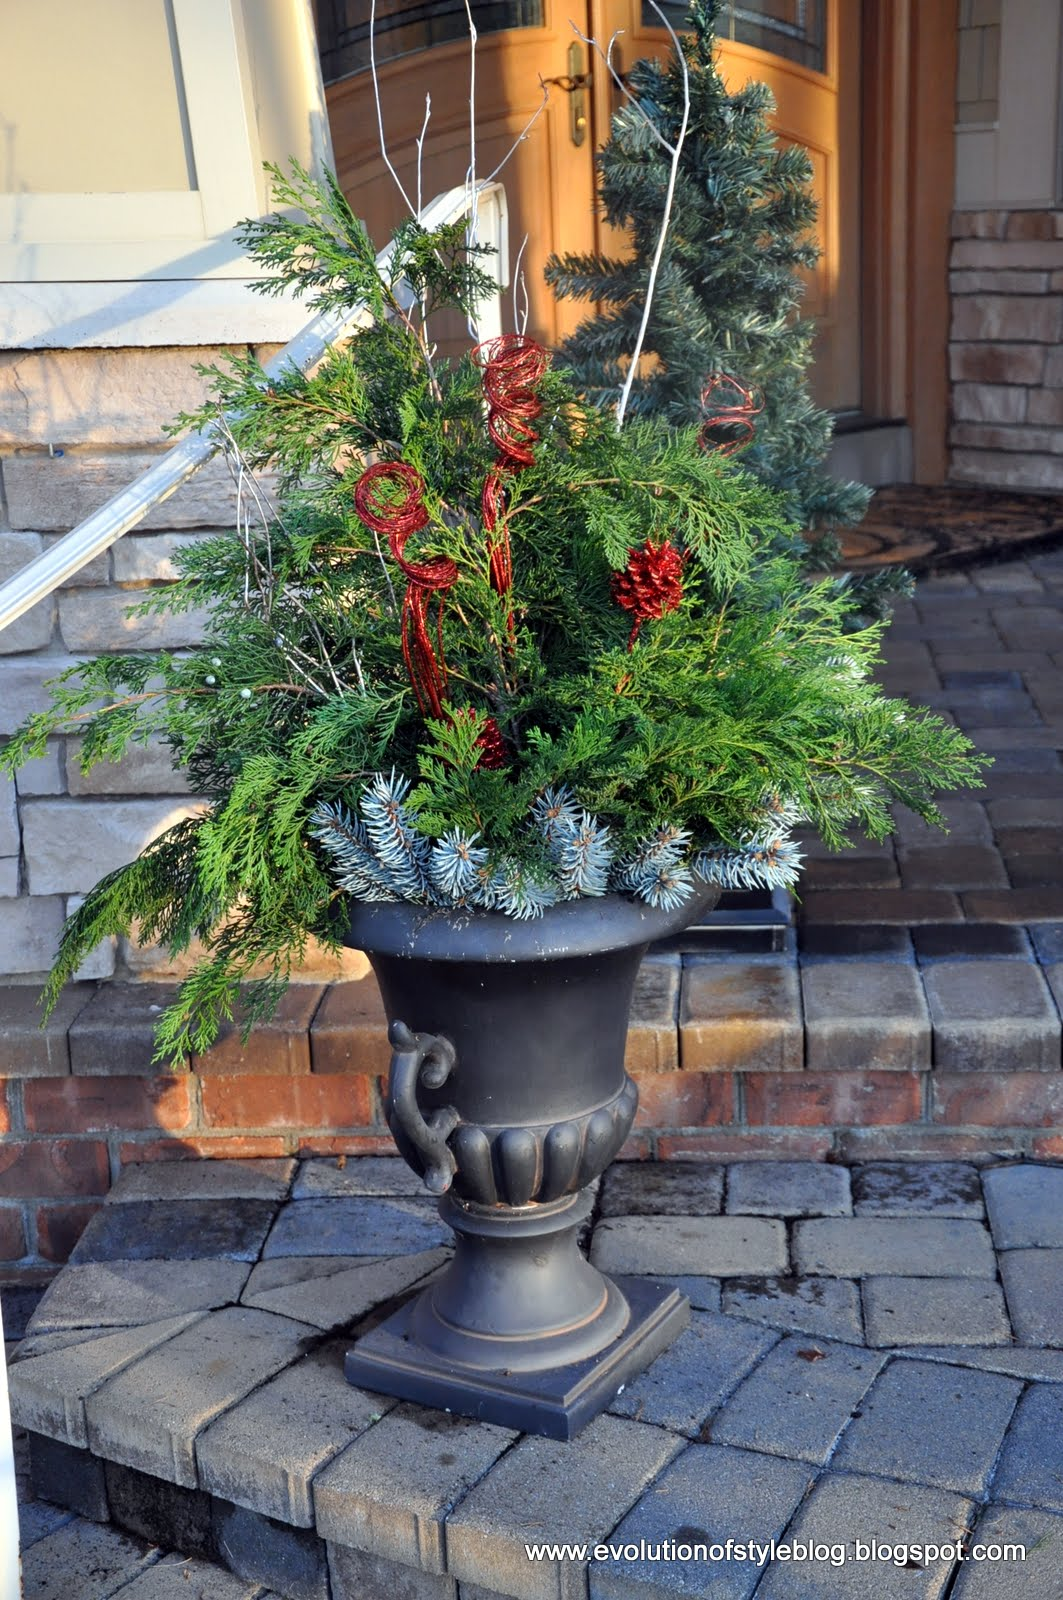 Decorating Ideas # Easy Outdoor Holiday Decor  Evolution Of Style